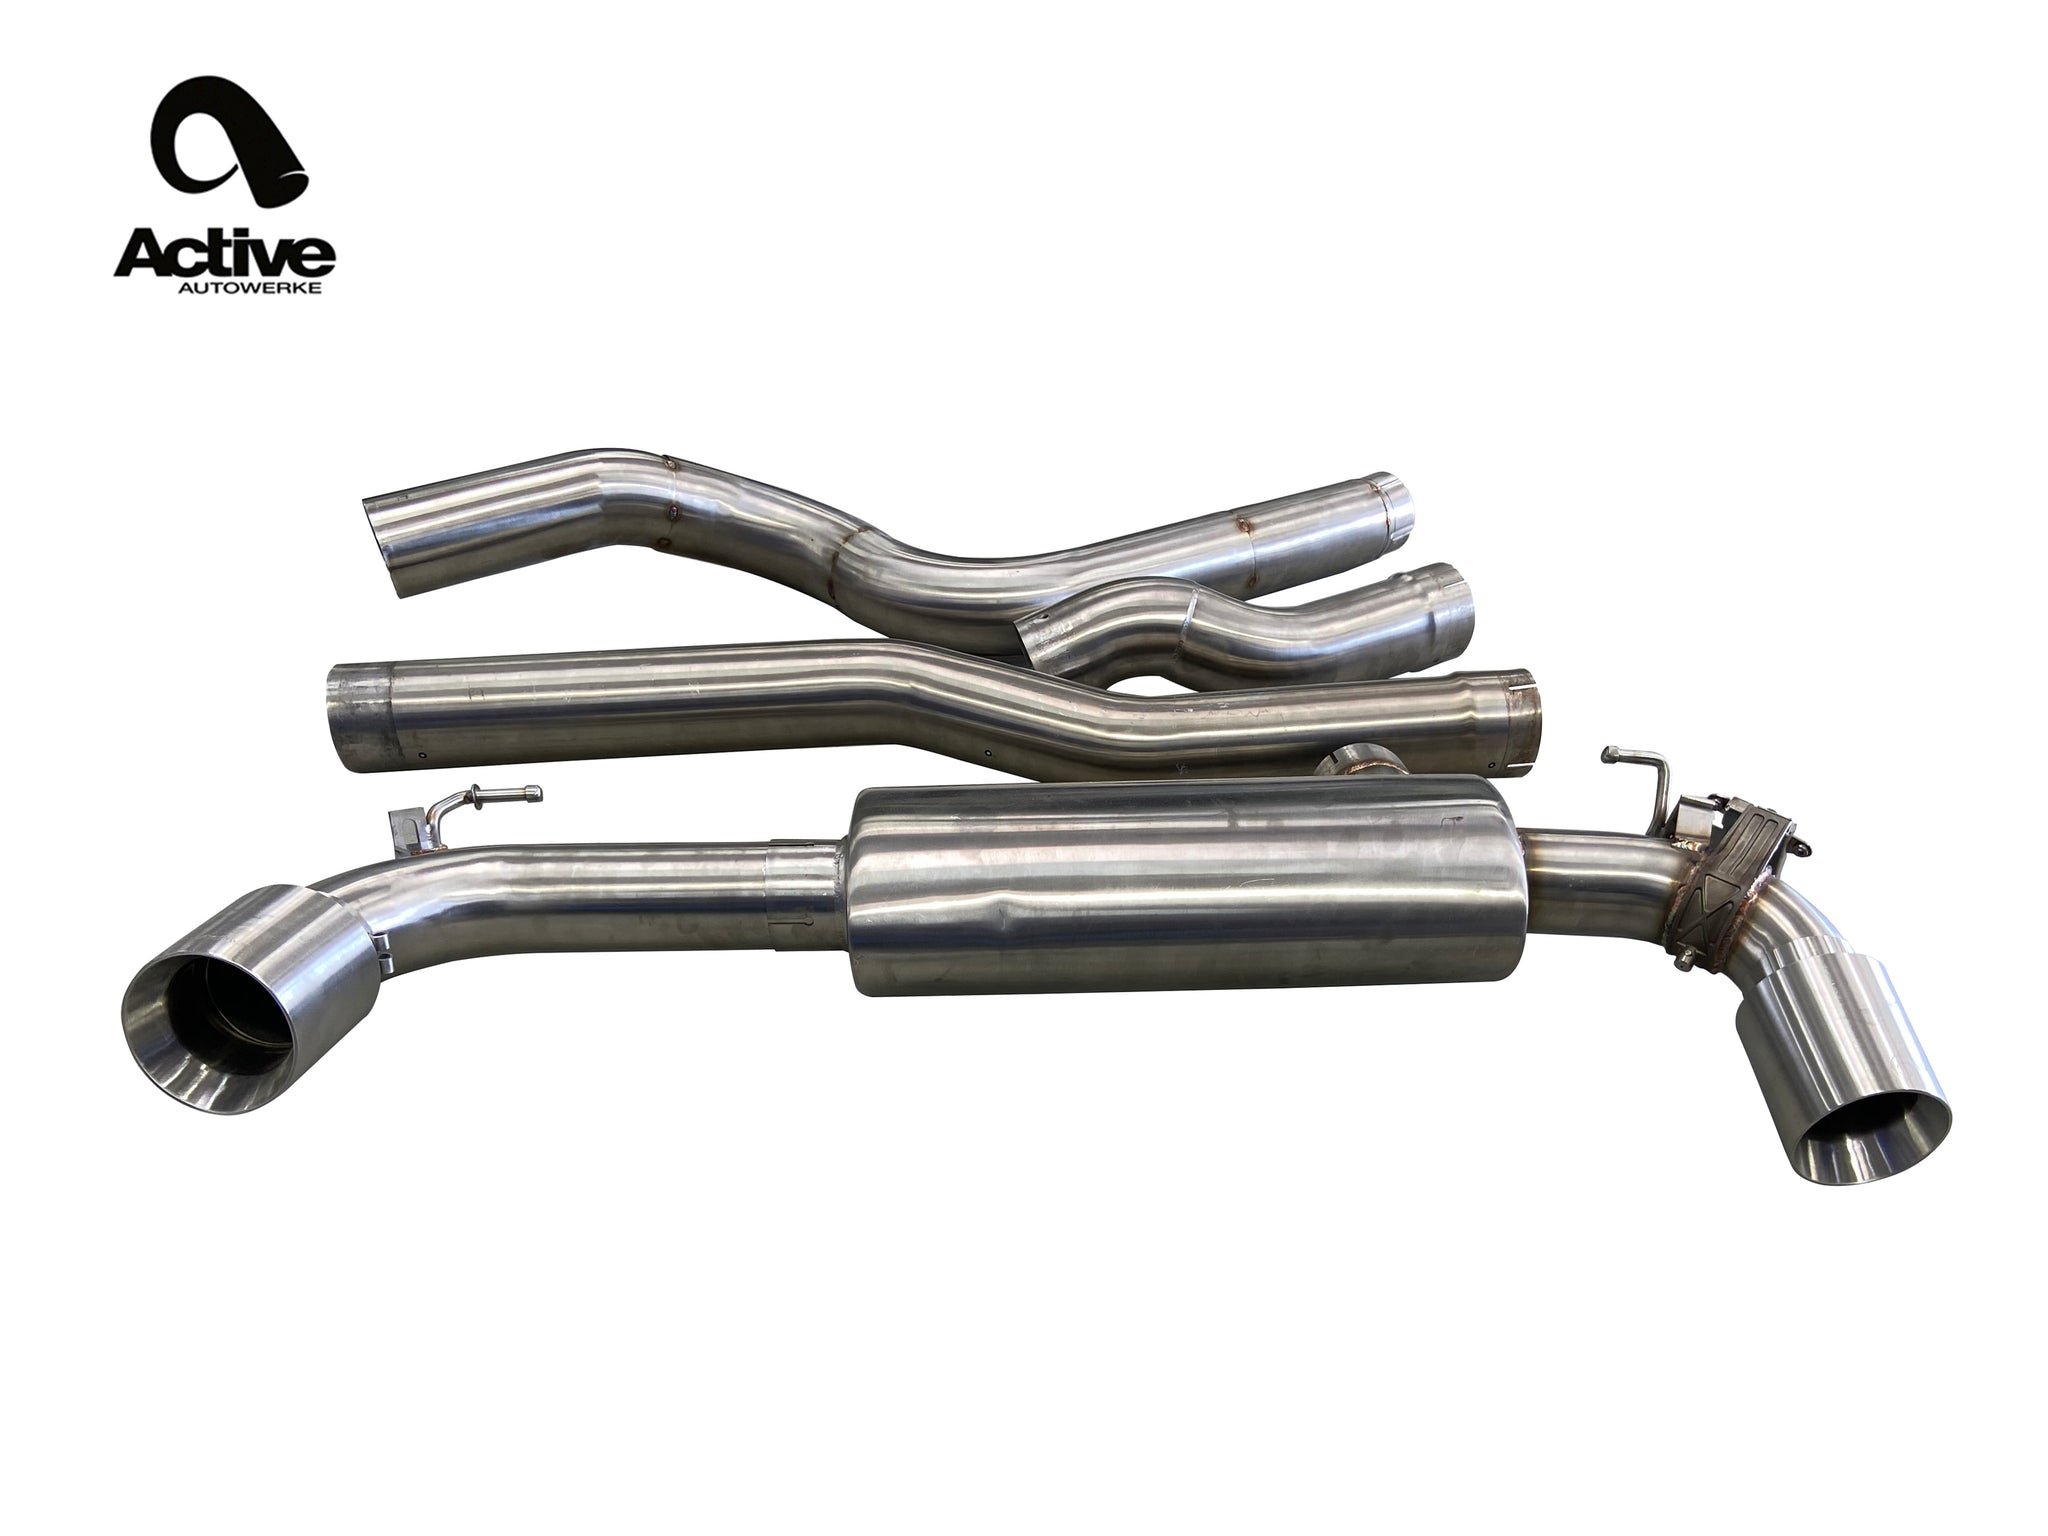 Supra Performance Rear Exhaust by Active Autowerke